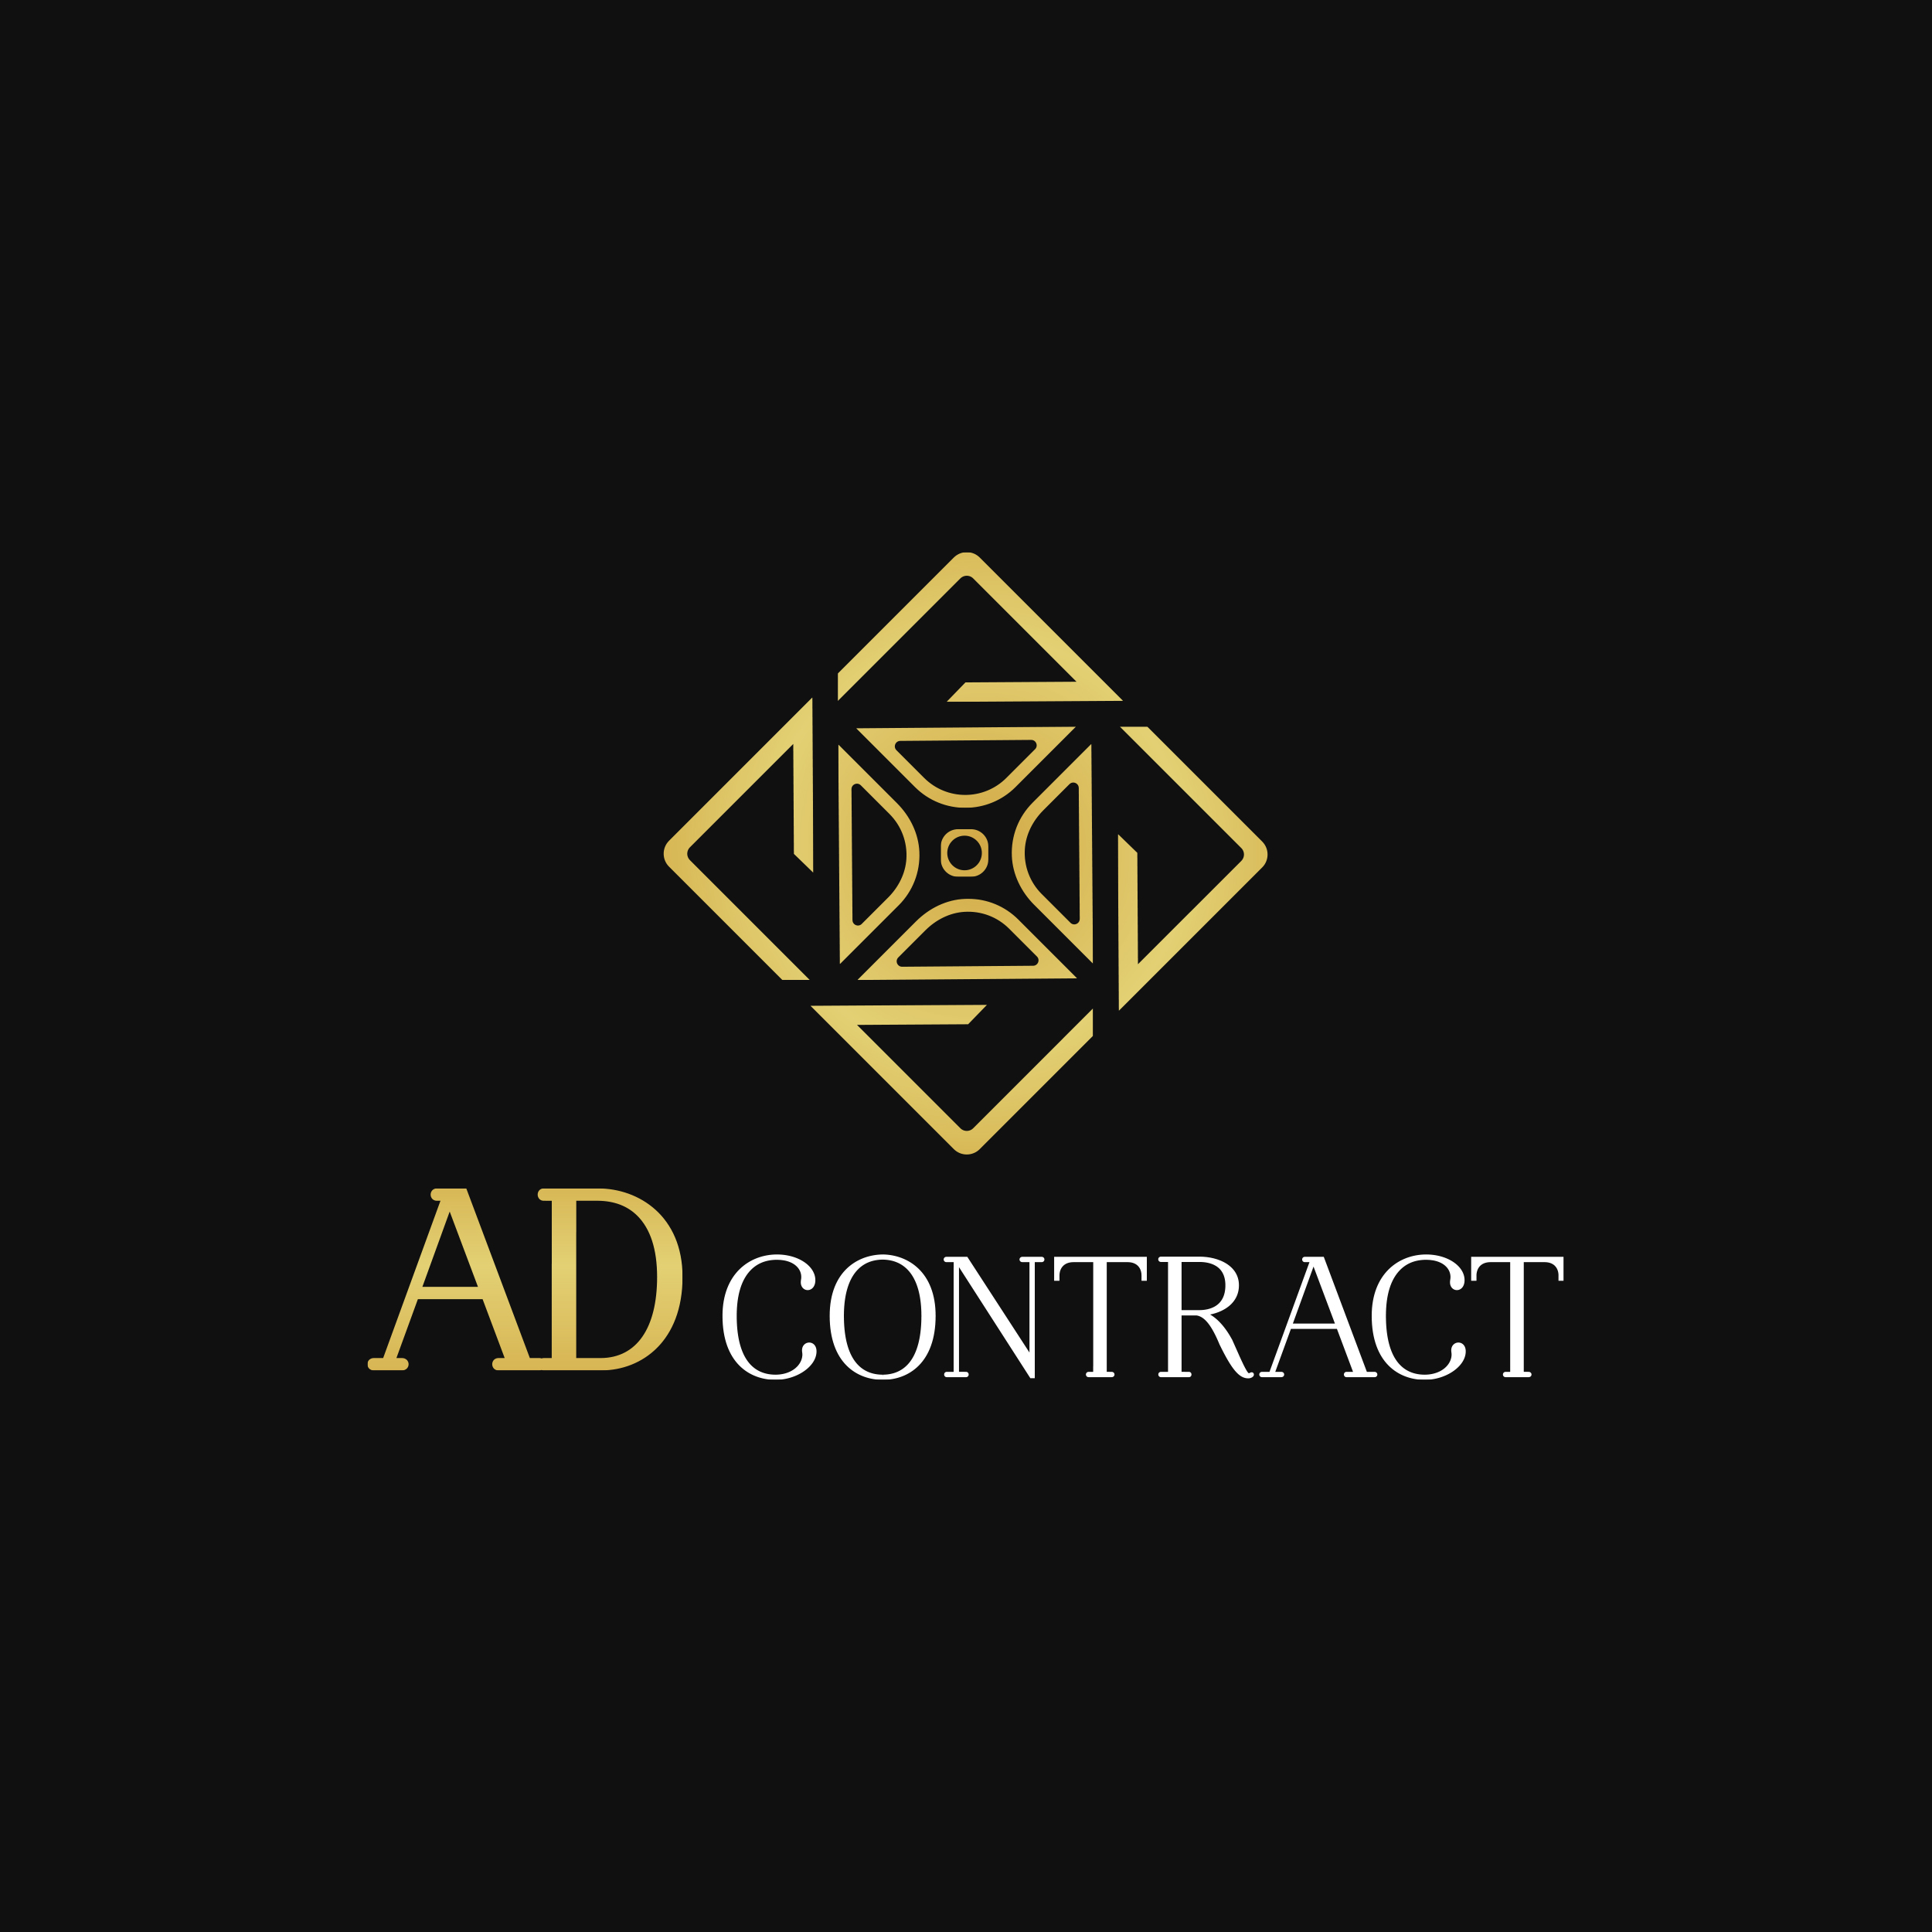 Ad Contract